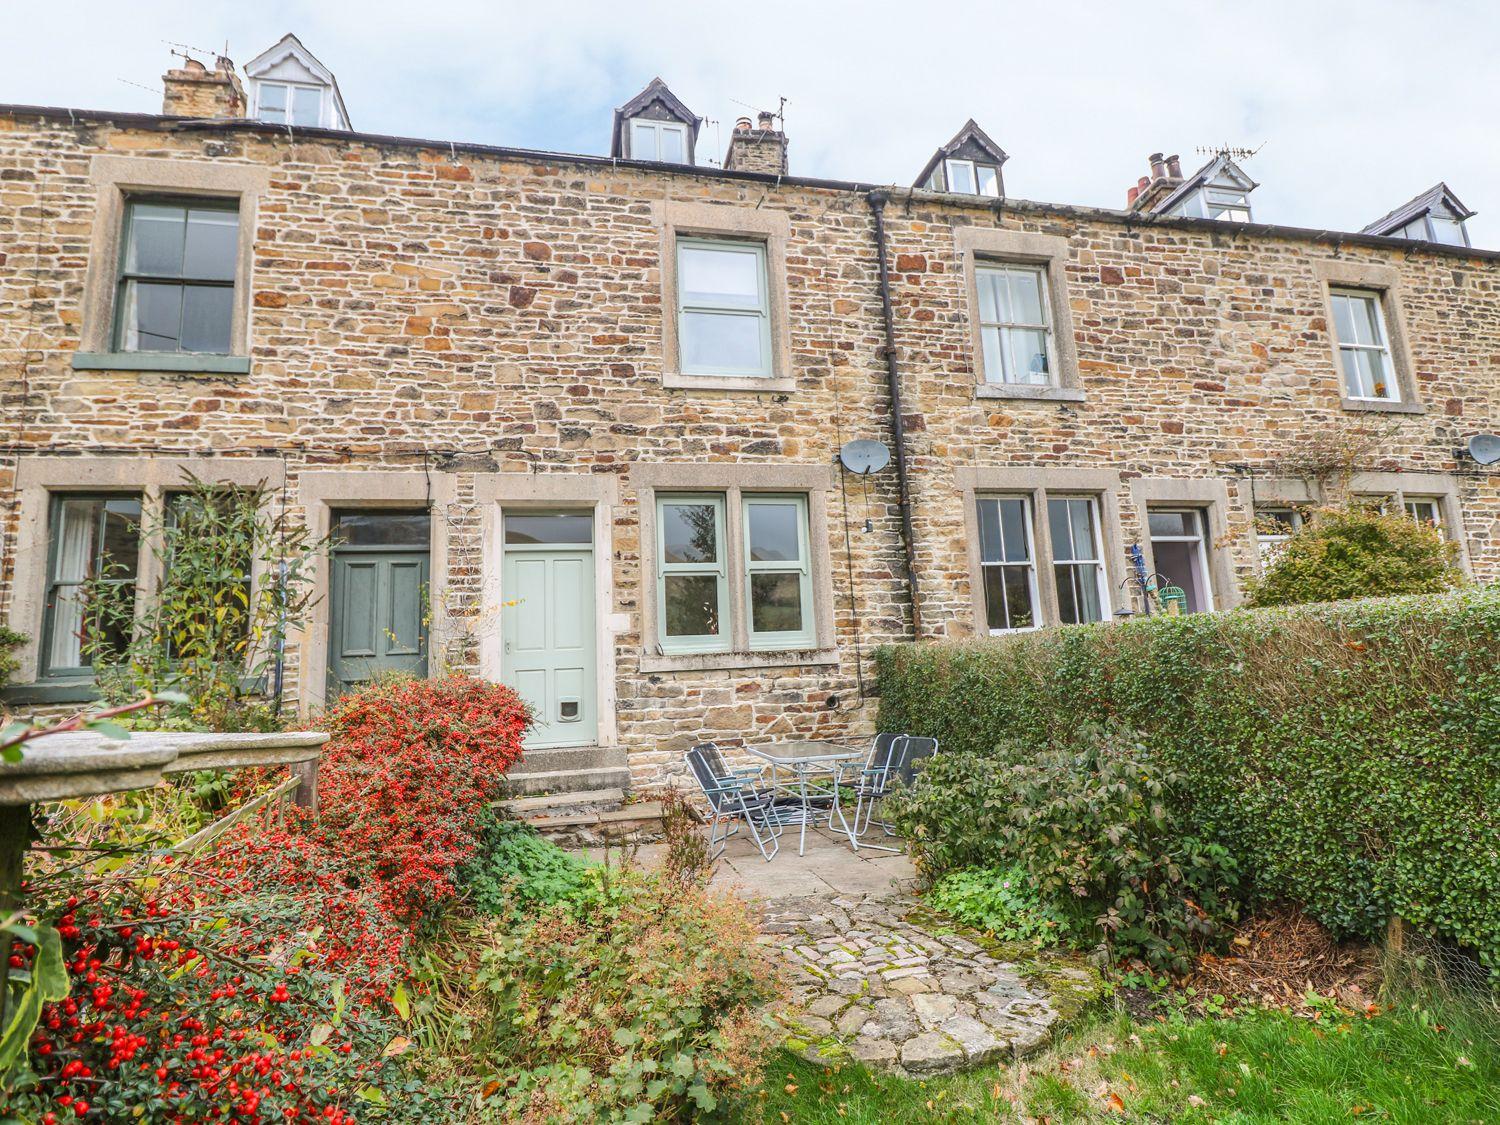 13 Hope Road - Peak District - 983874 - photo 1